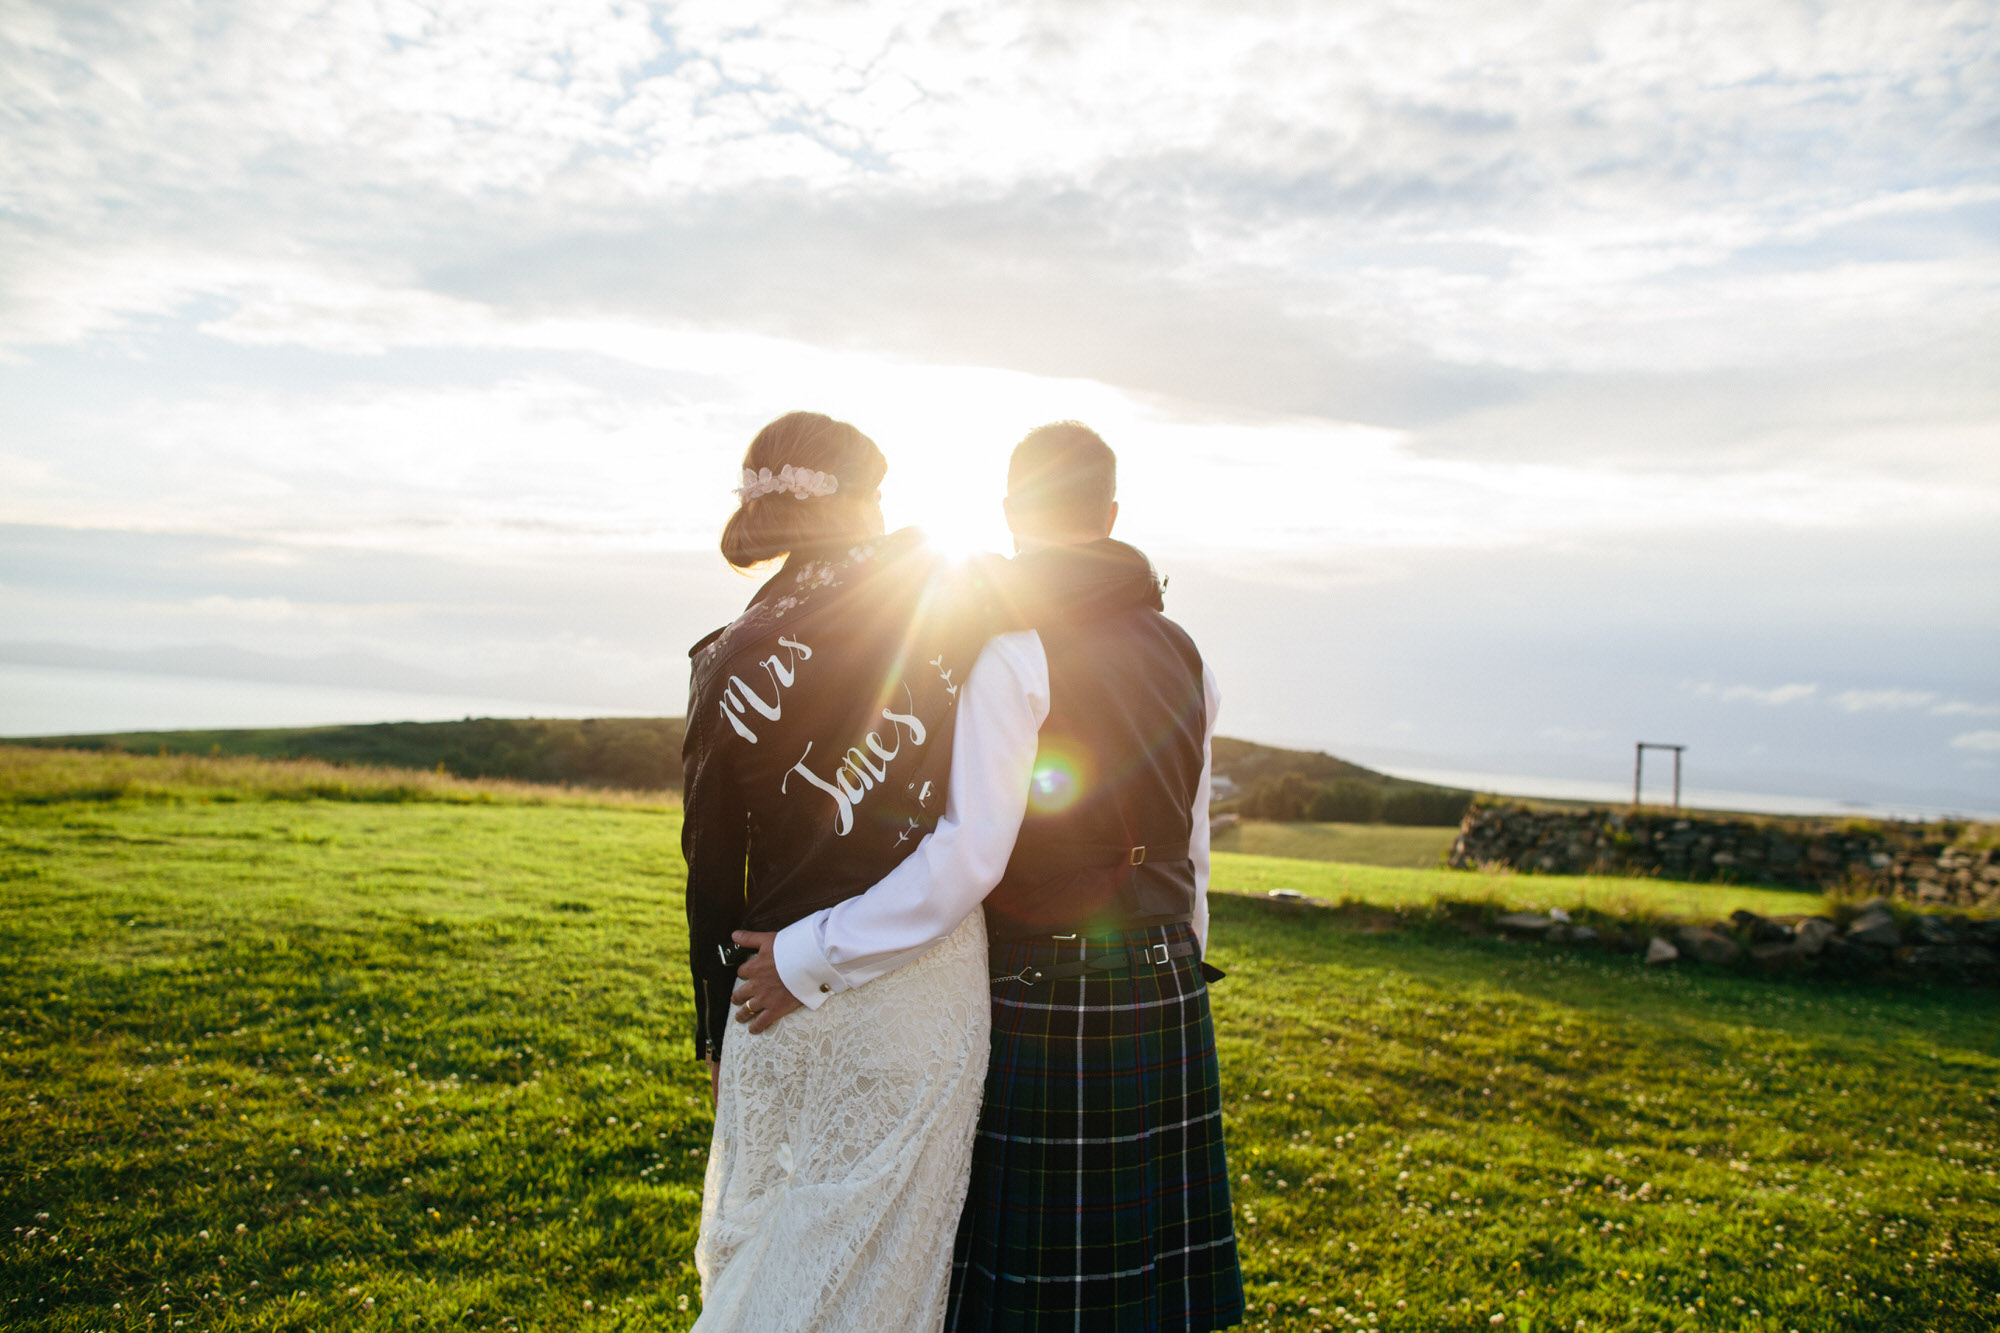 Alternative Natural Quirky Wedding Photographs UK Scotland 002.jpg